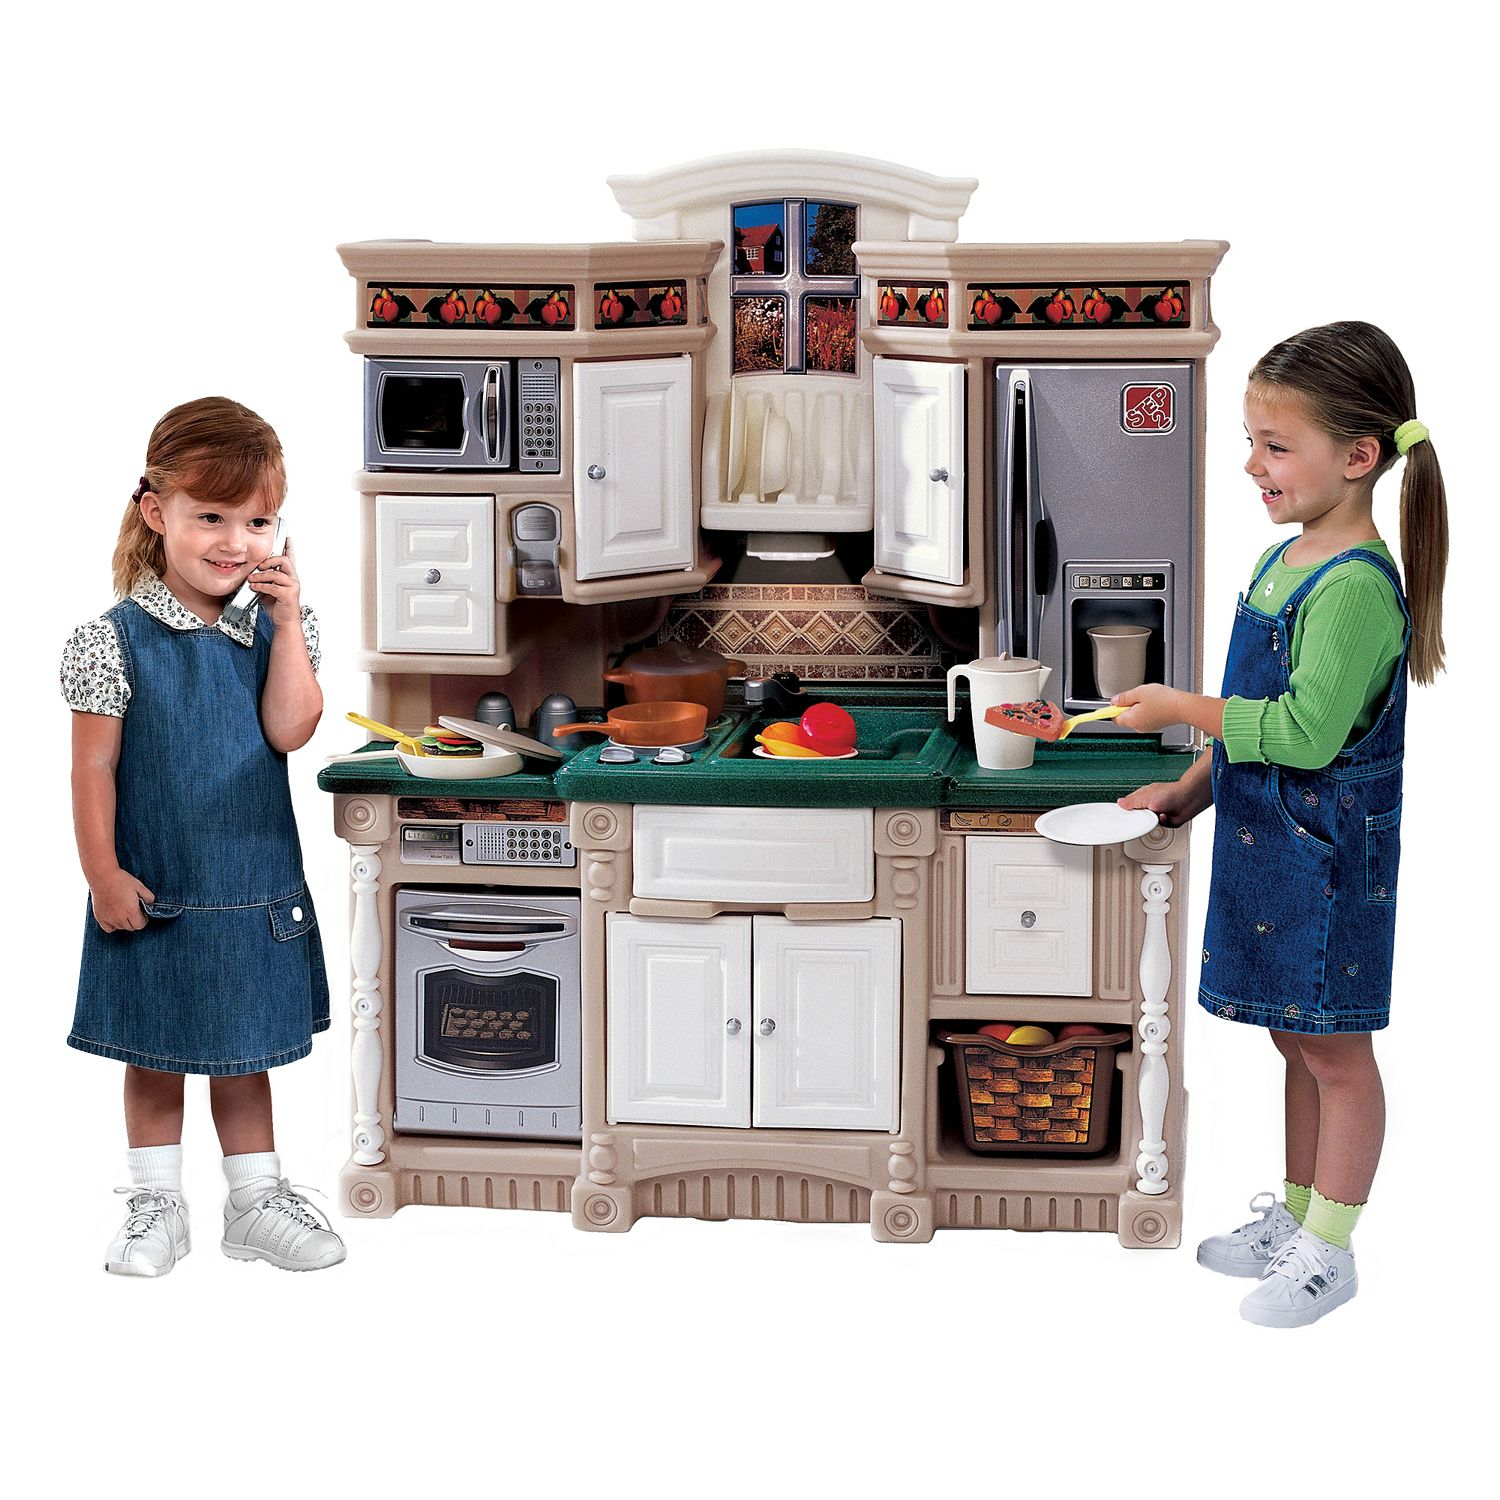 Step 2 Lifestyle Dream Kitchen  Toys & Games  Pretend